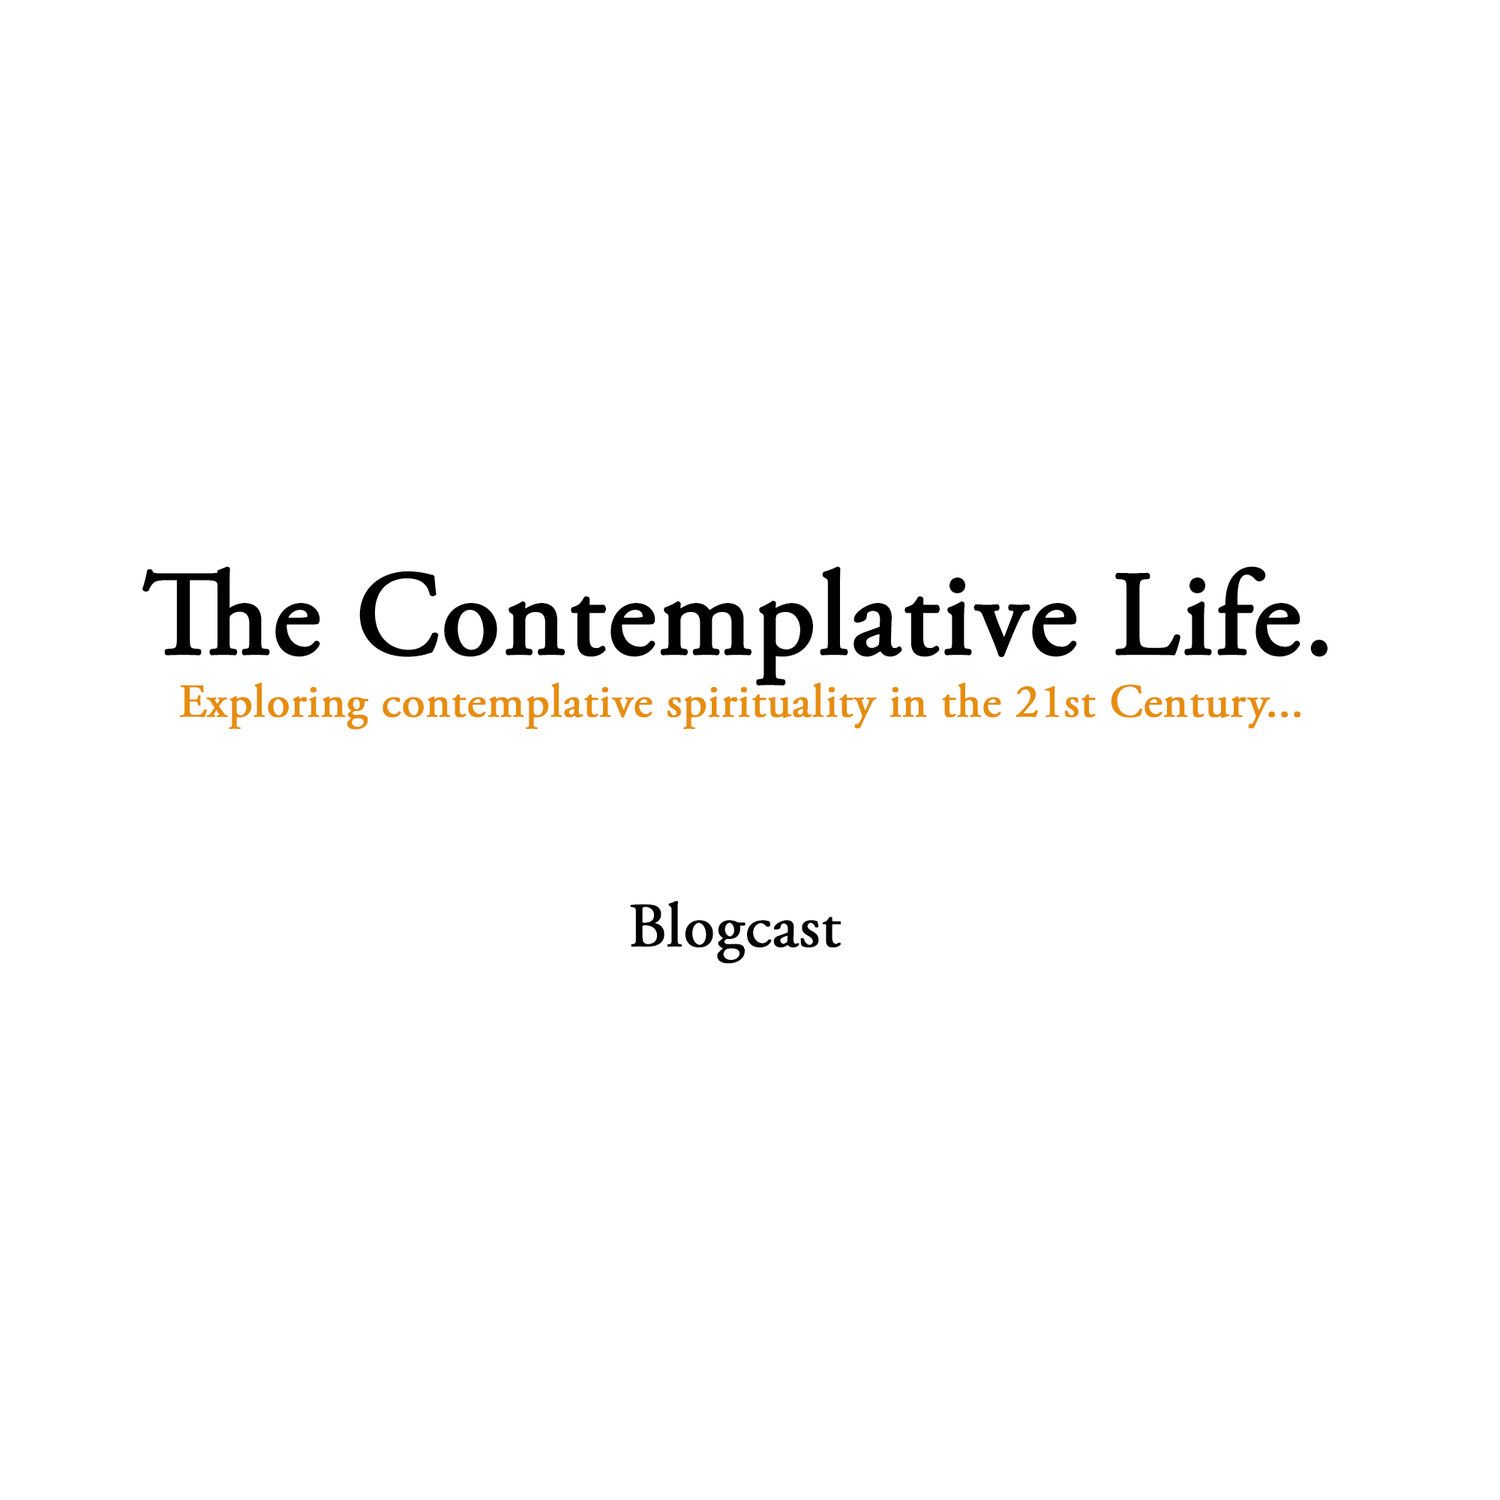 The Contemplative Life Blogcast